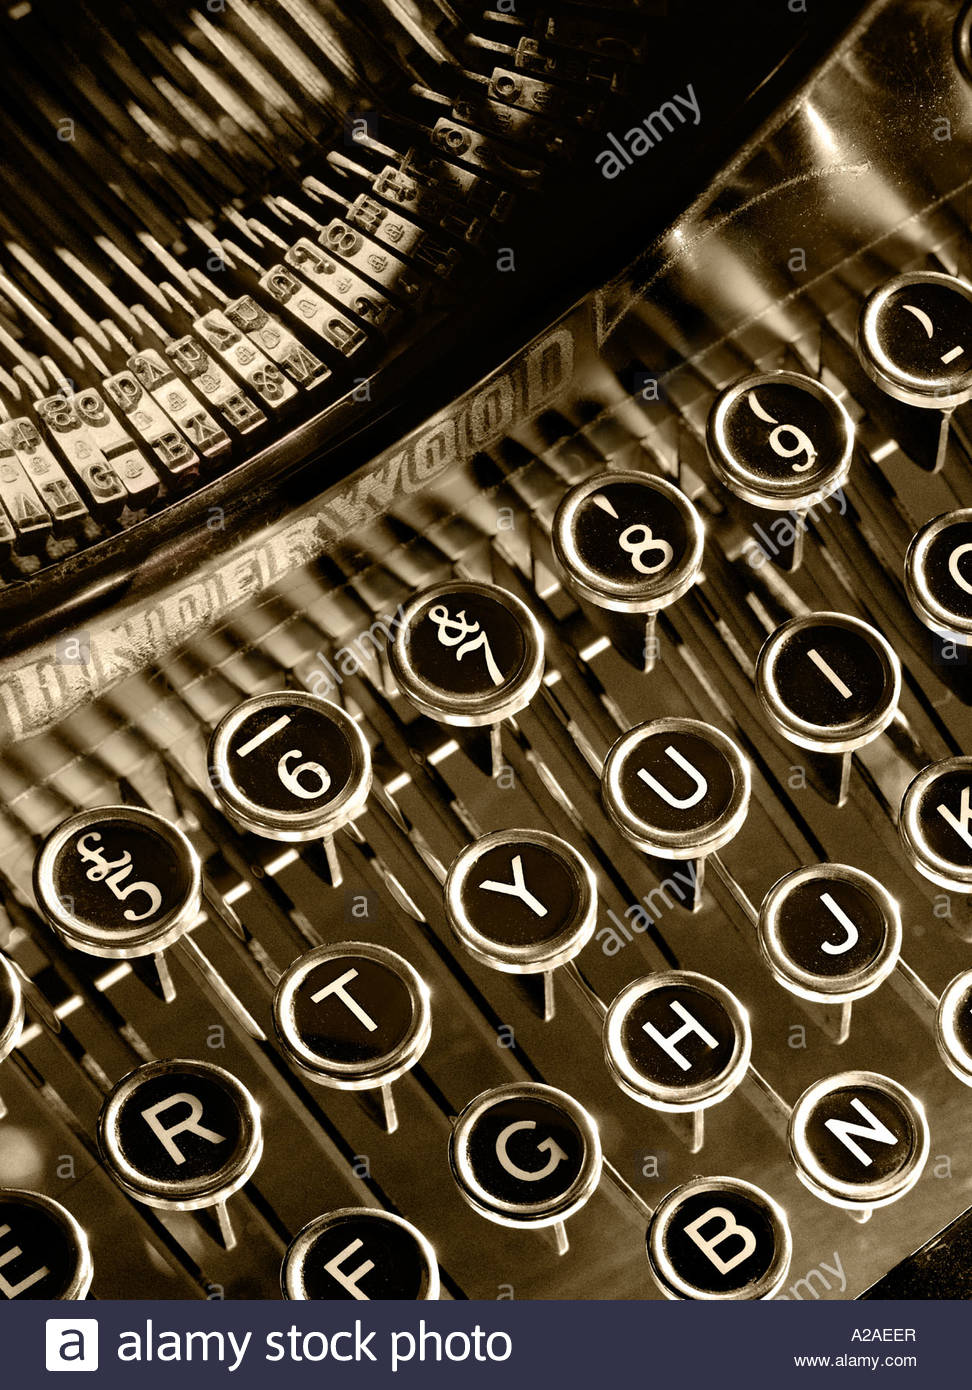 Close up of the keys on an old-fashioned mechanical typewriter, monochrome sepia treatment. - Stock Image